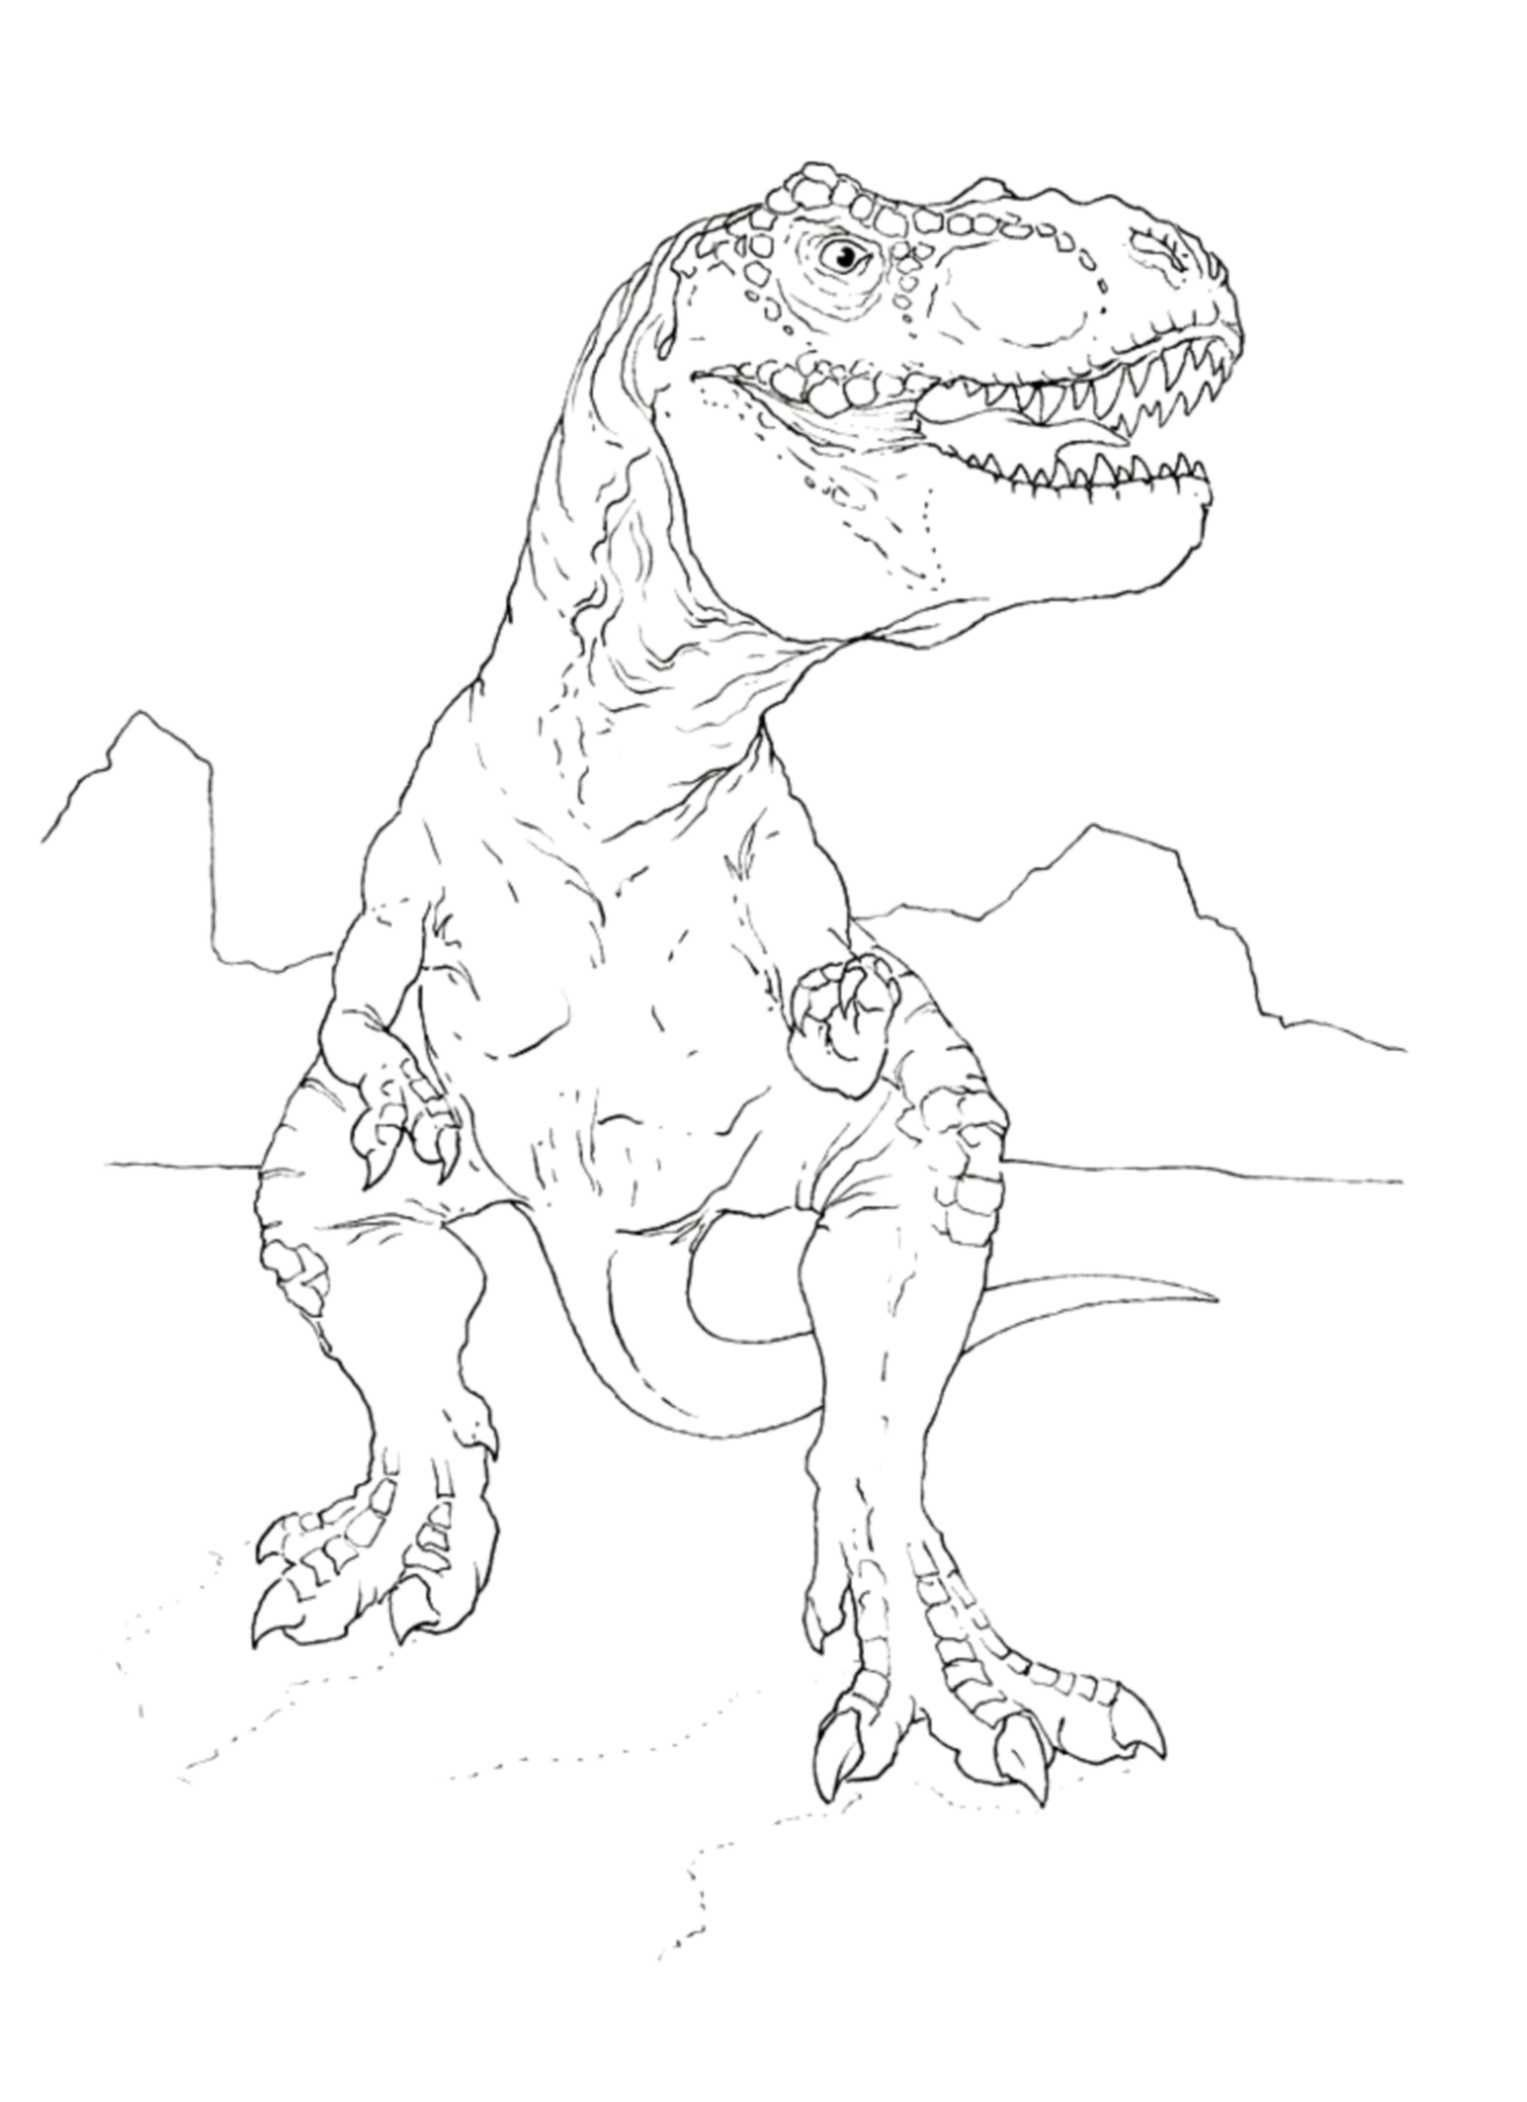 Jurassic Park Coloring Pages Fresh Dinosaur T Rex Coloring Pages Dinosaur Coloring Pages Dinosaur Coloring Free Coloring Pages